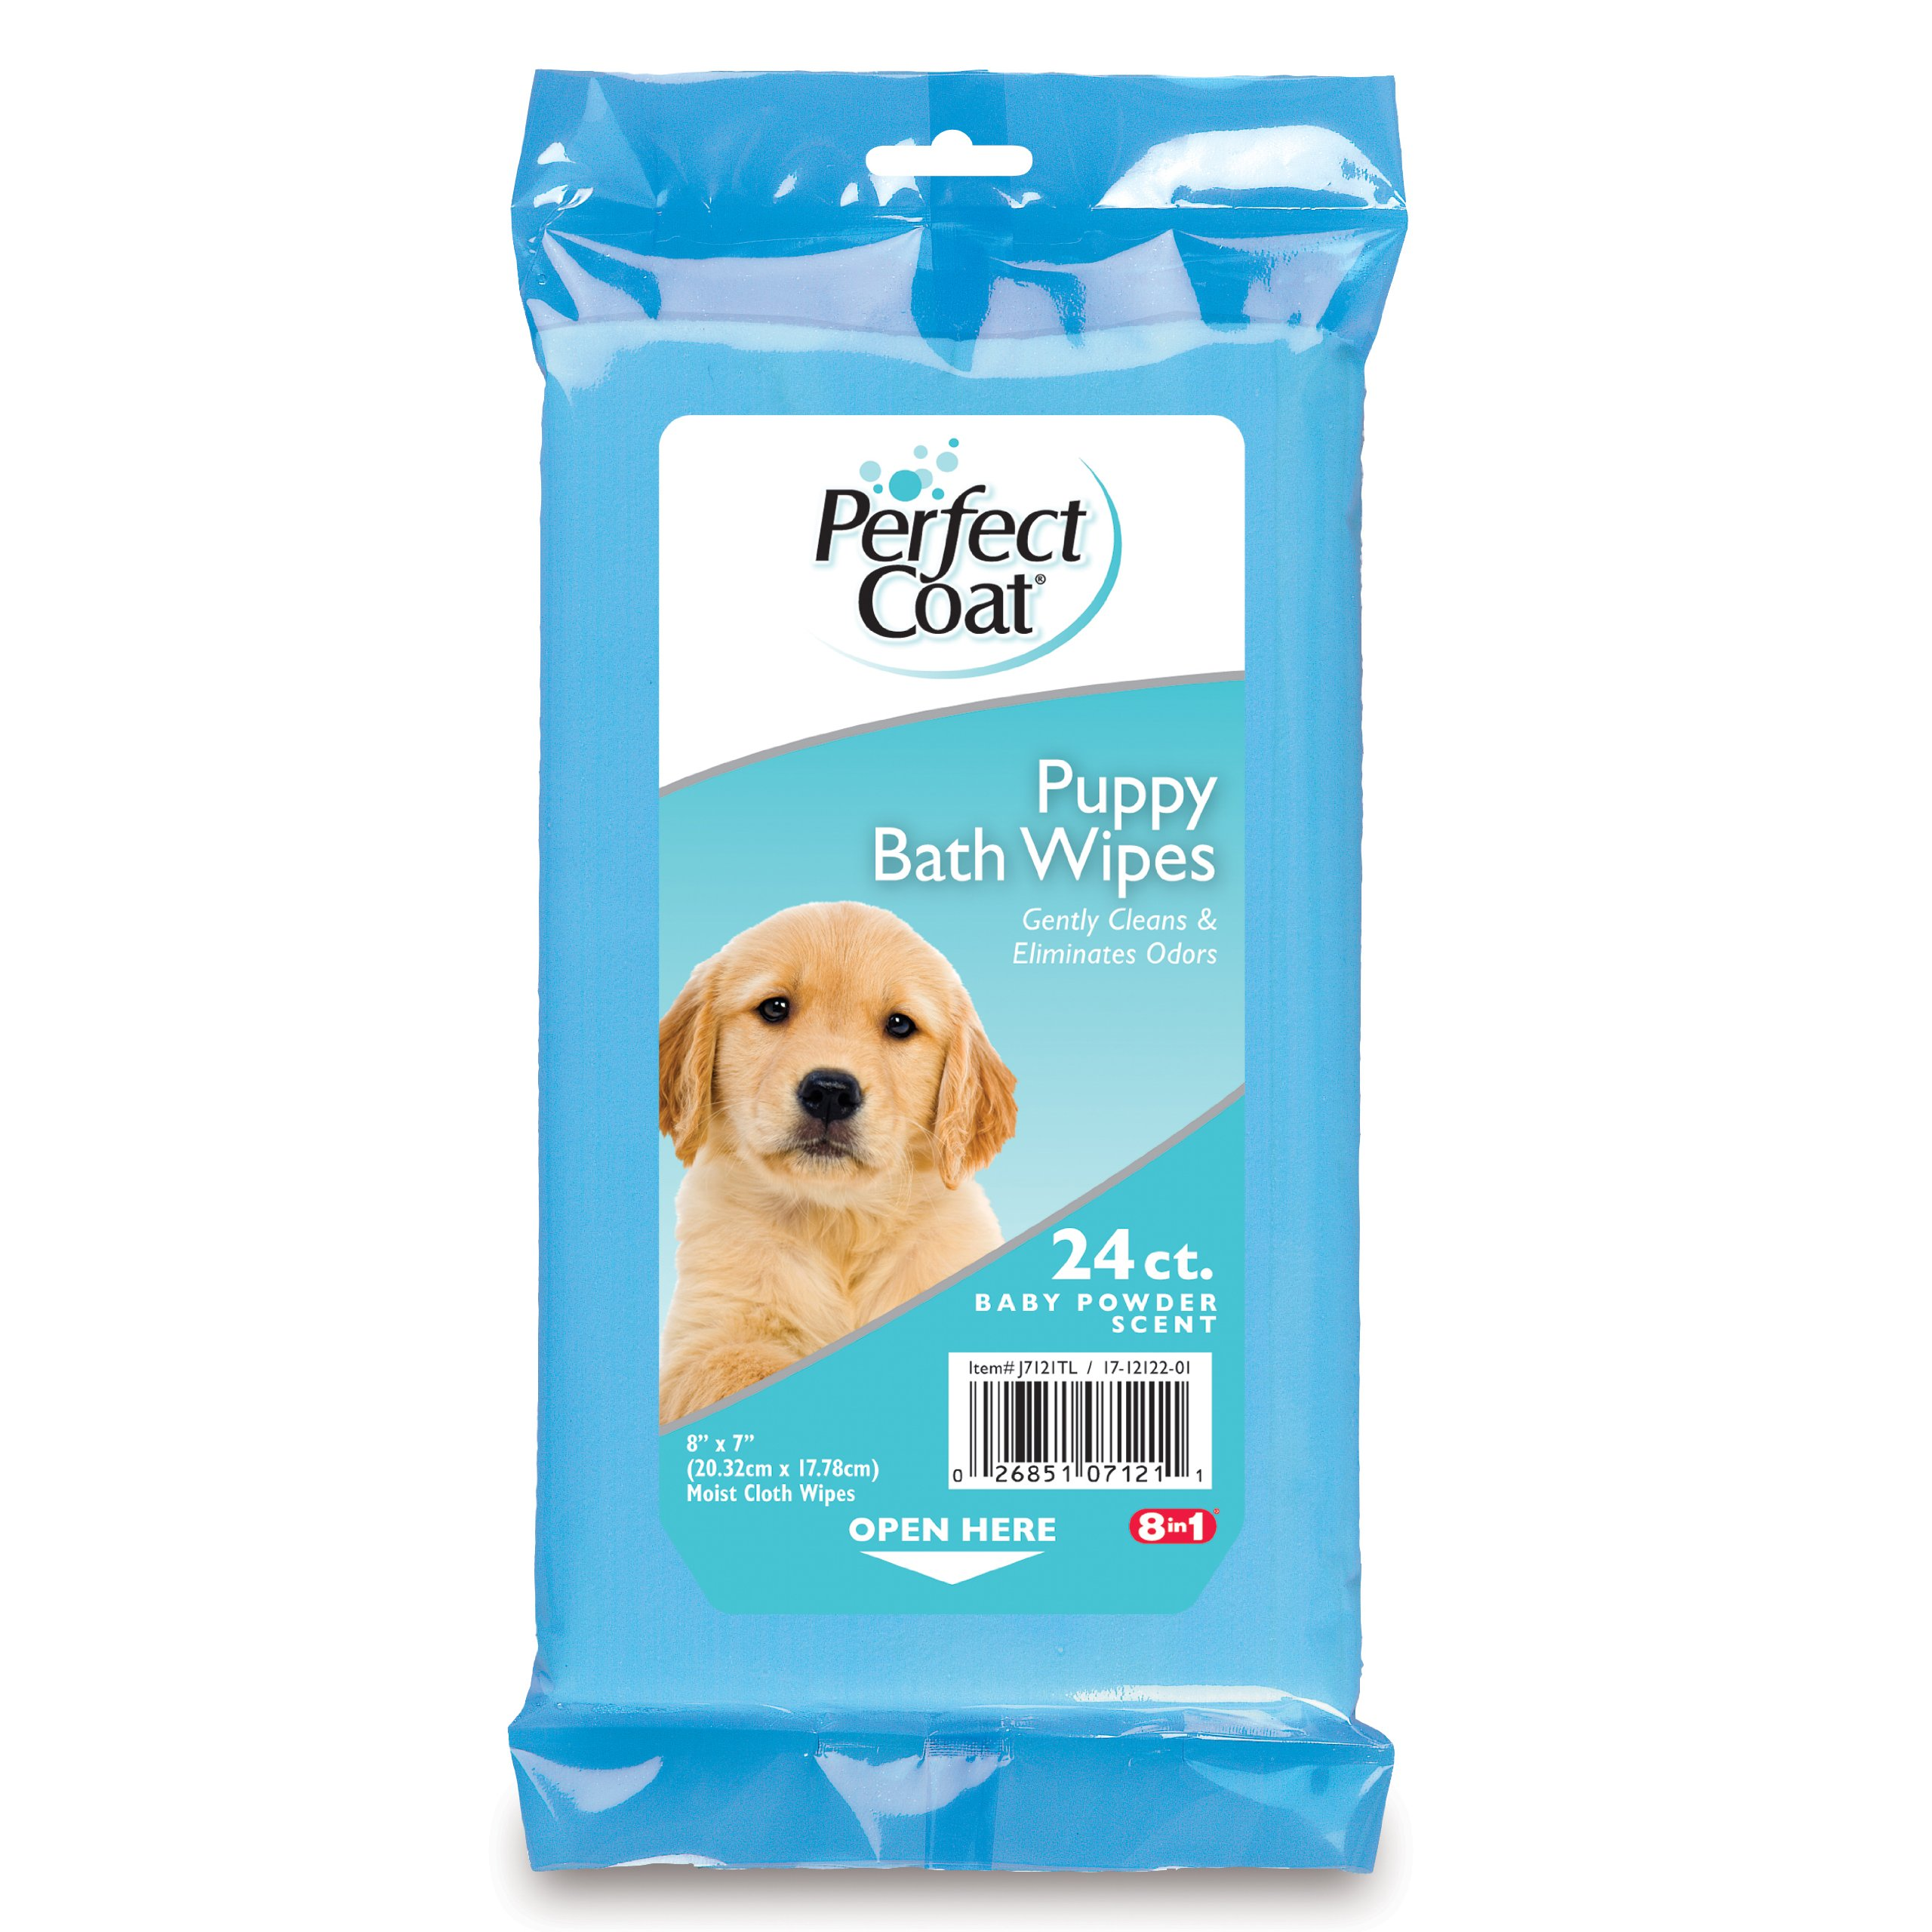 Perfect Coat Puppy Bath Wipes, Baby Powder Scent, 24-Count